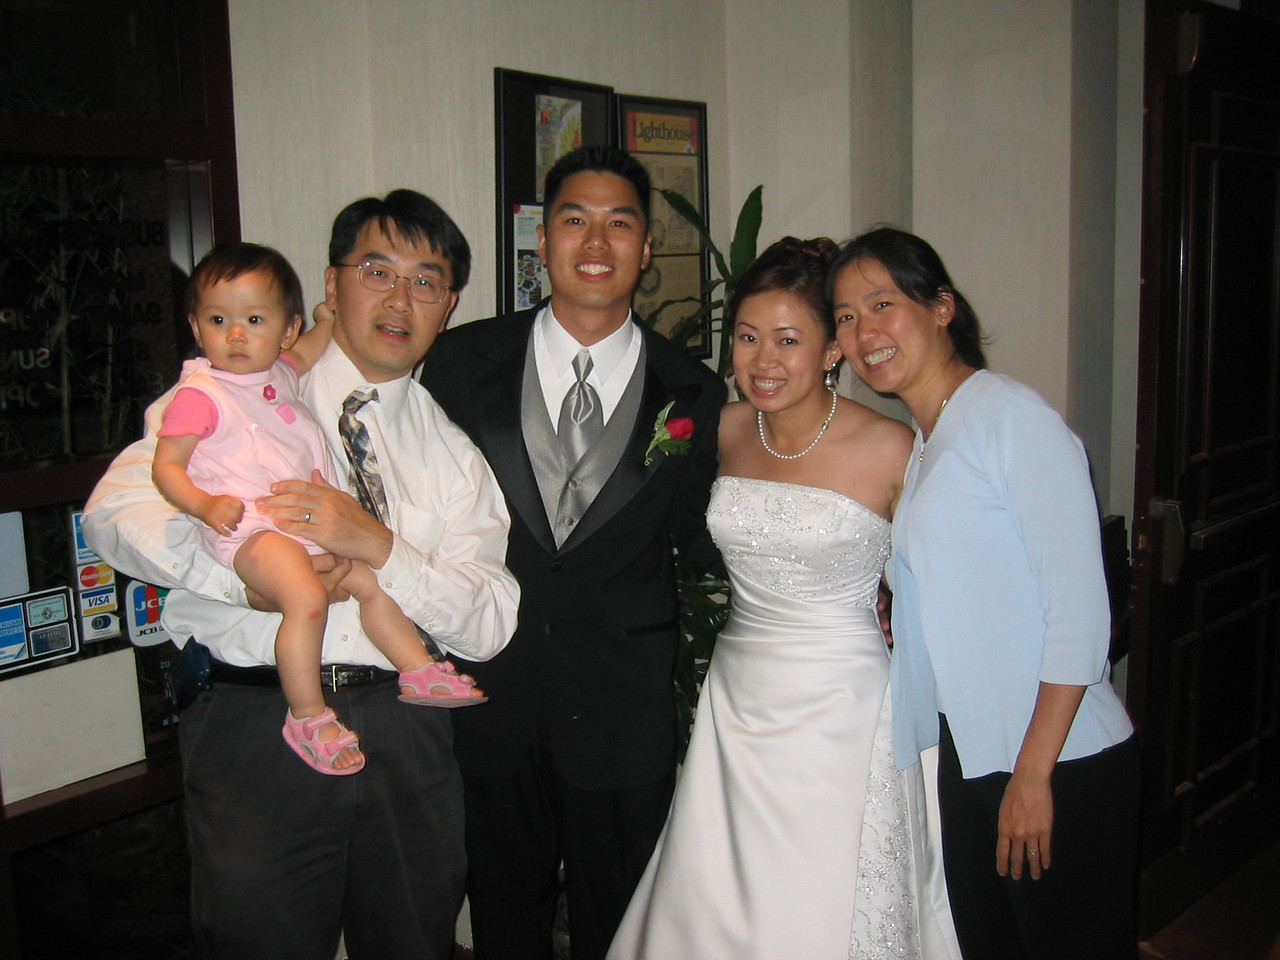 Reception - Ally, Brian, & Jenny Chiang with bride & groom